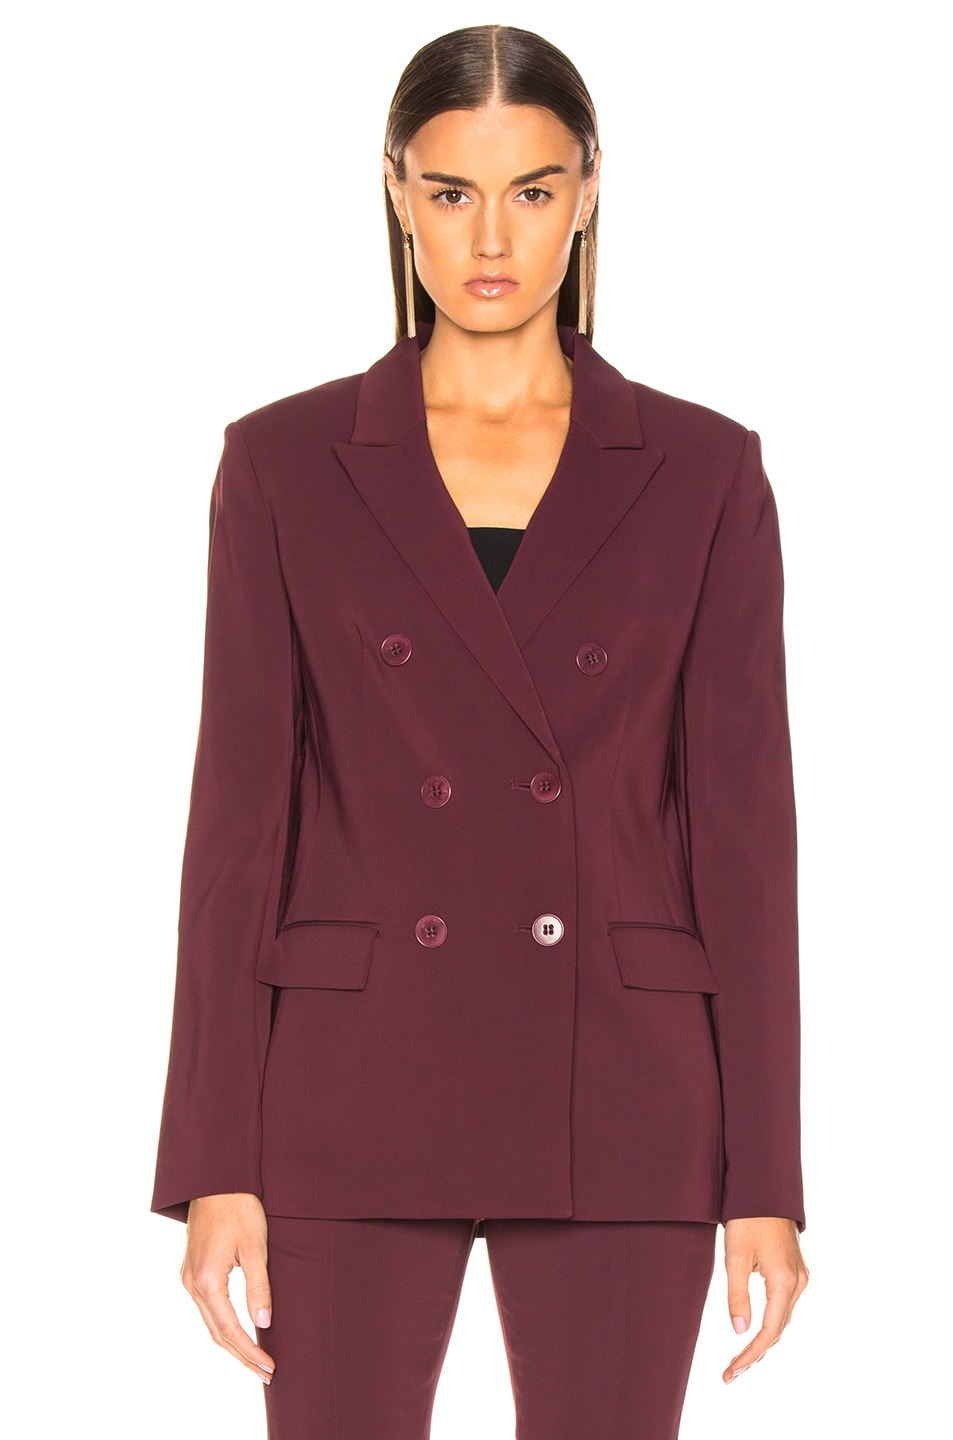 Image 2 of Tibi Steward Blazer in Dark Currant